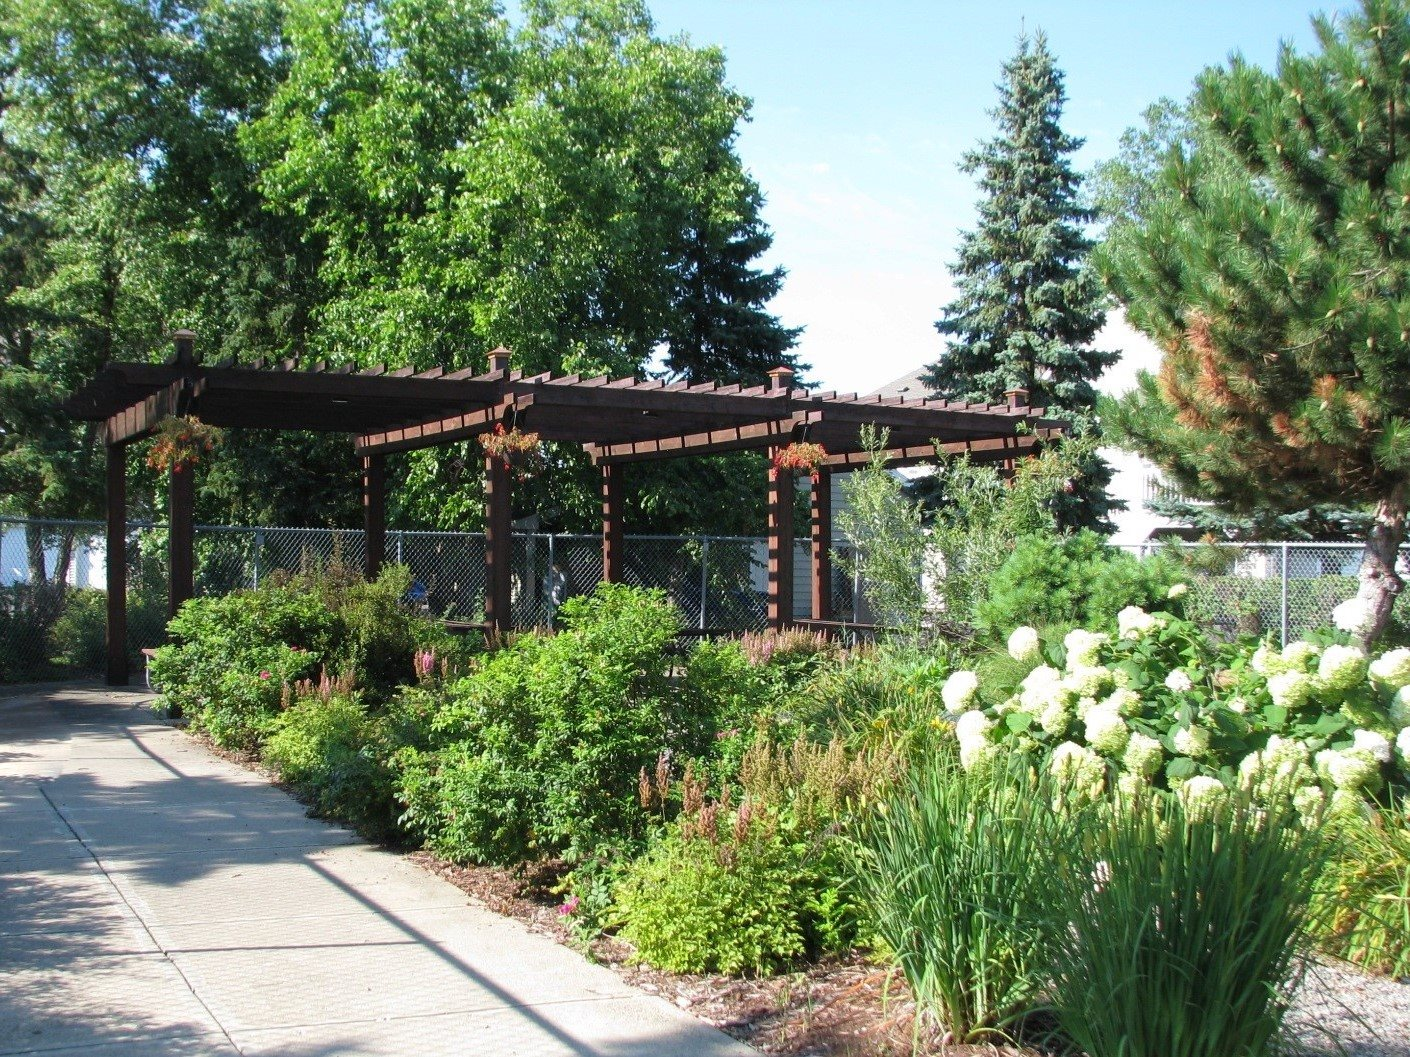 Tea Garden at Meadows of Coon Rapids in Coon Rapids, Minnesota